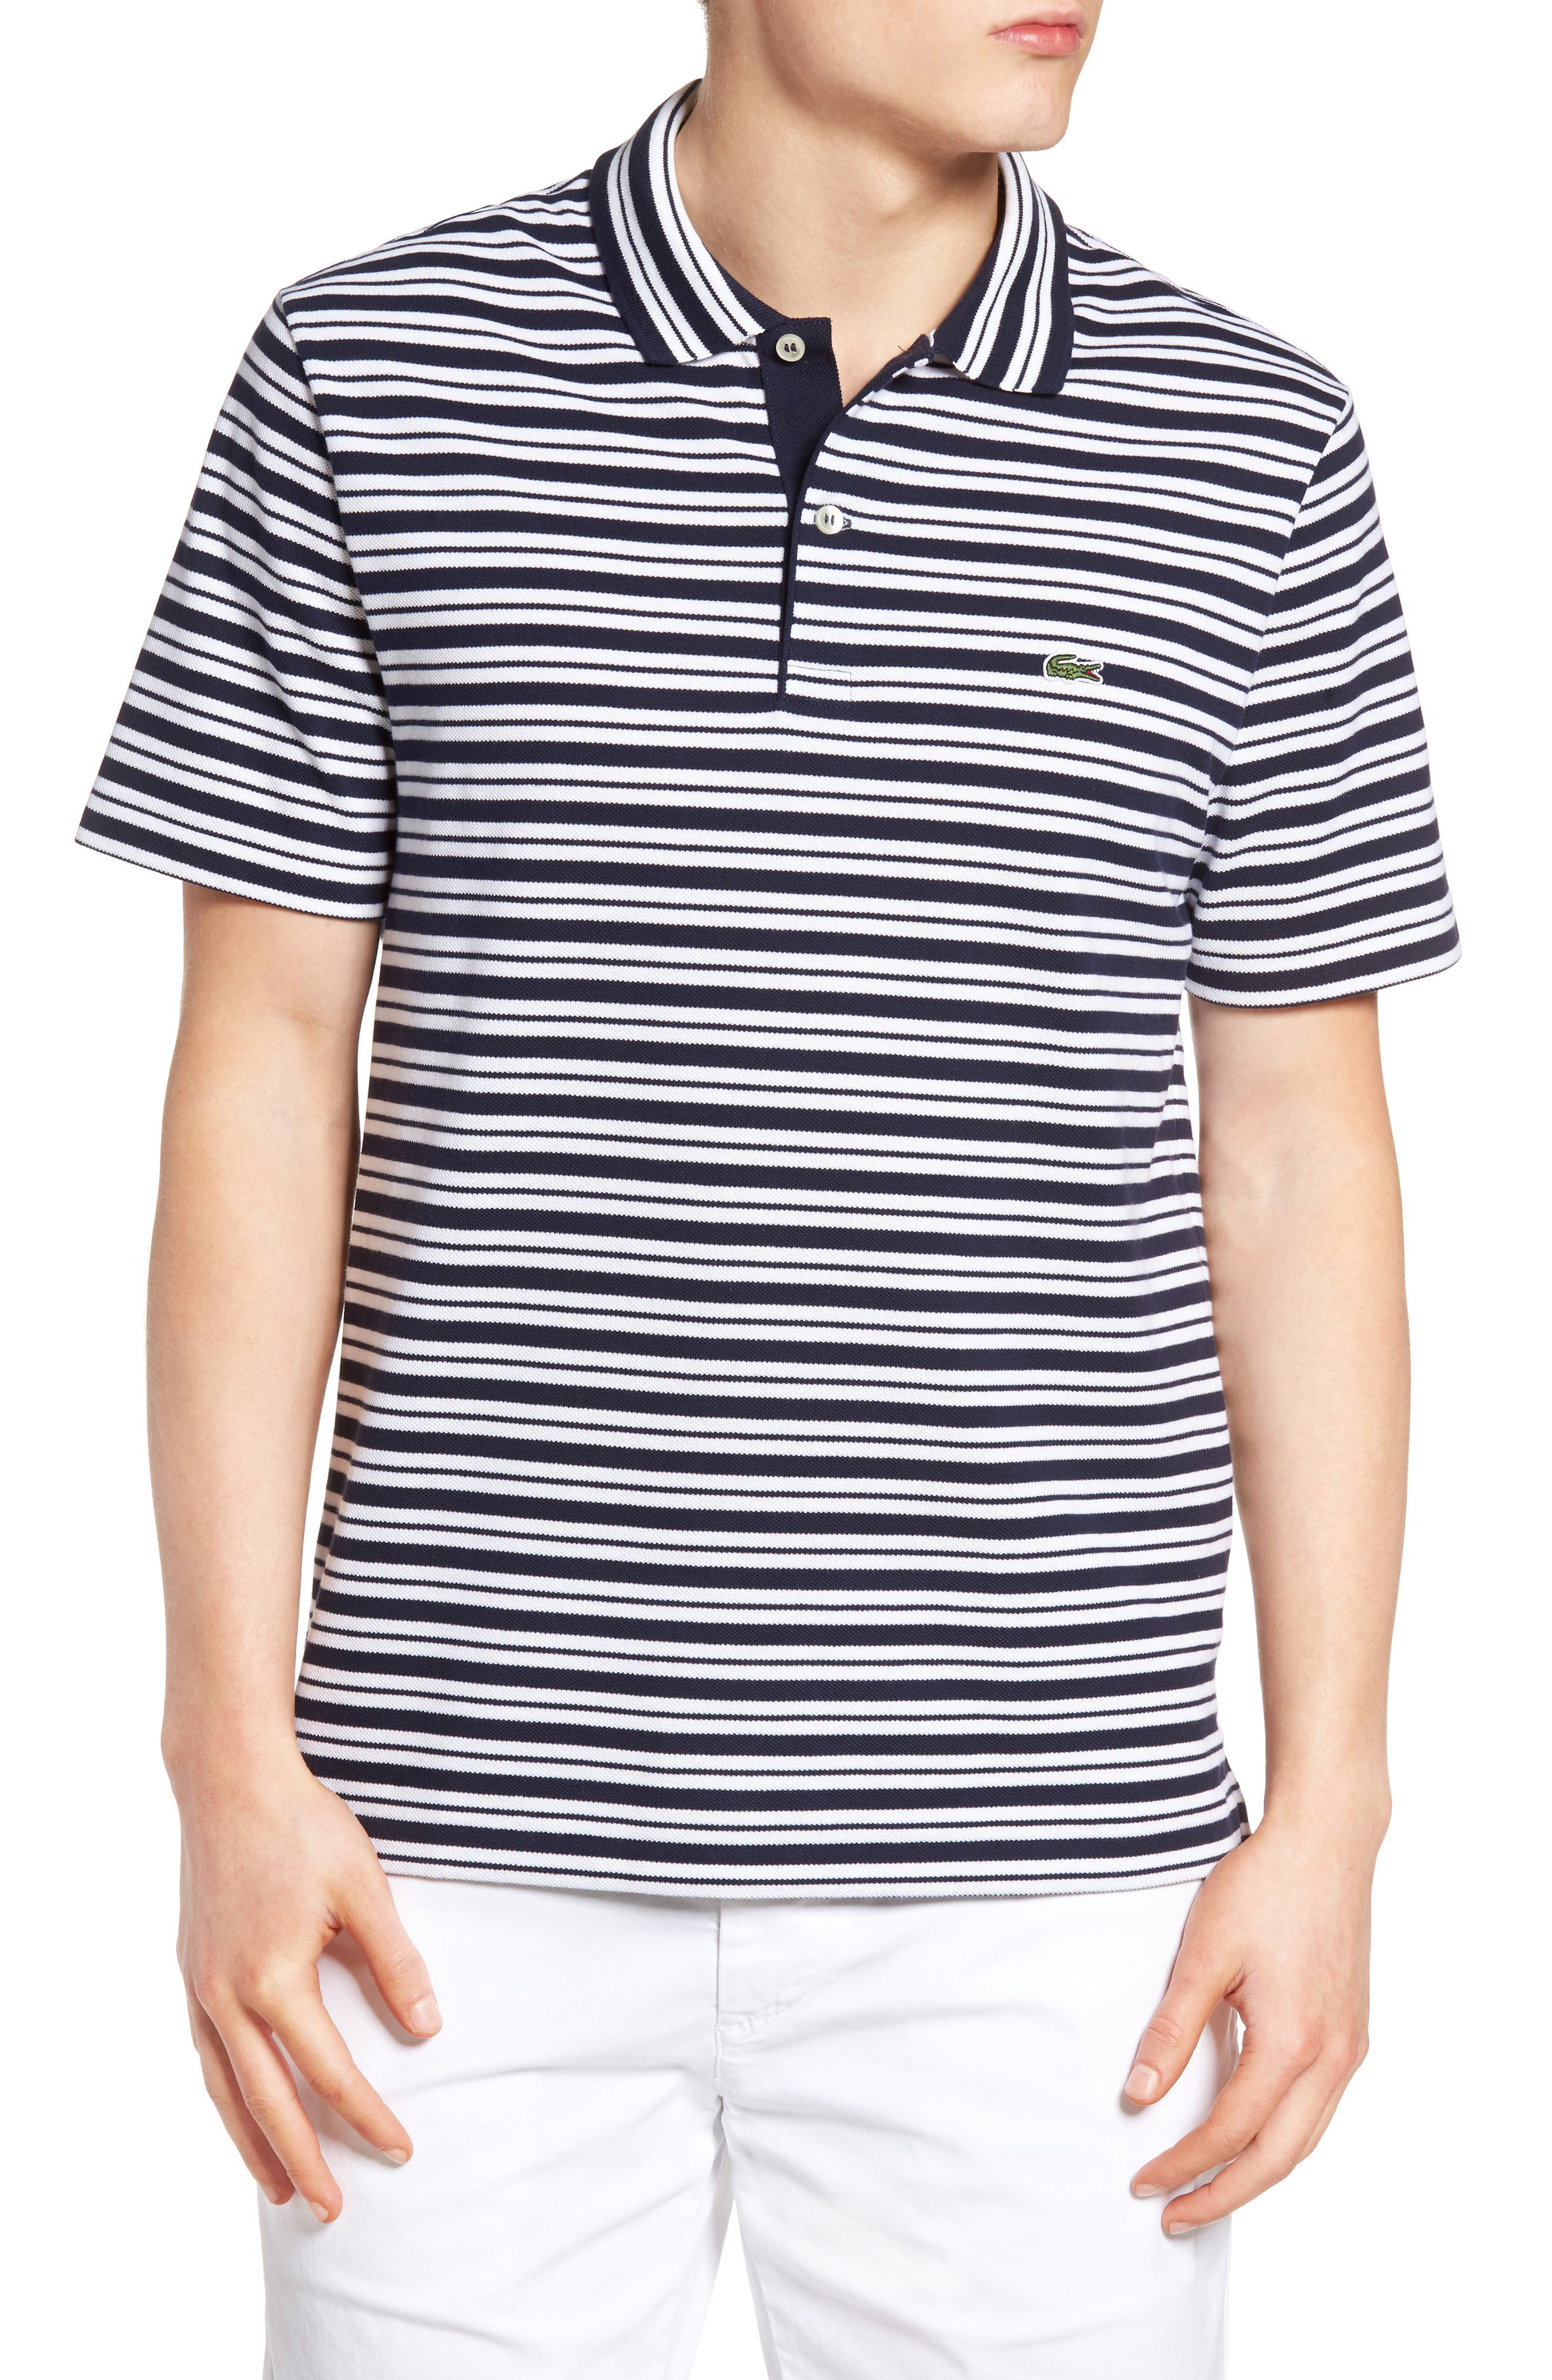 Alternate Image 1 Selected - Lacoste Striped Polo